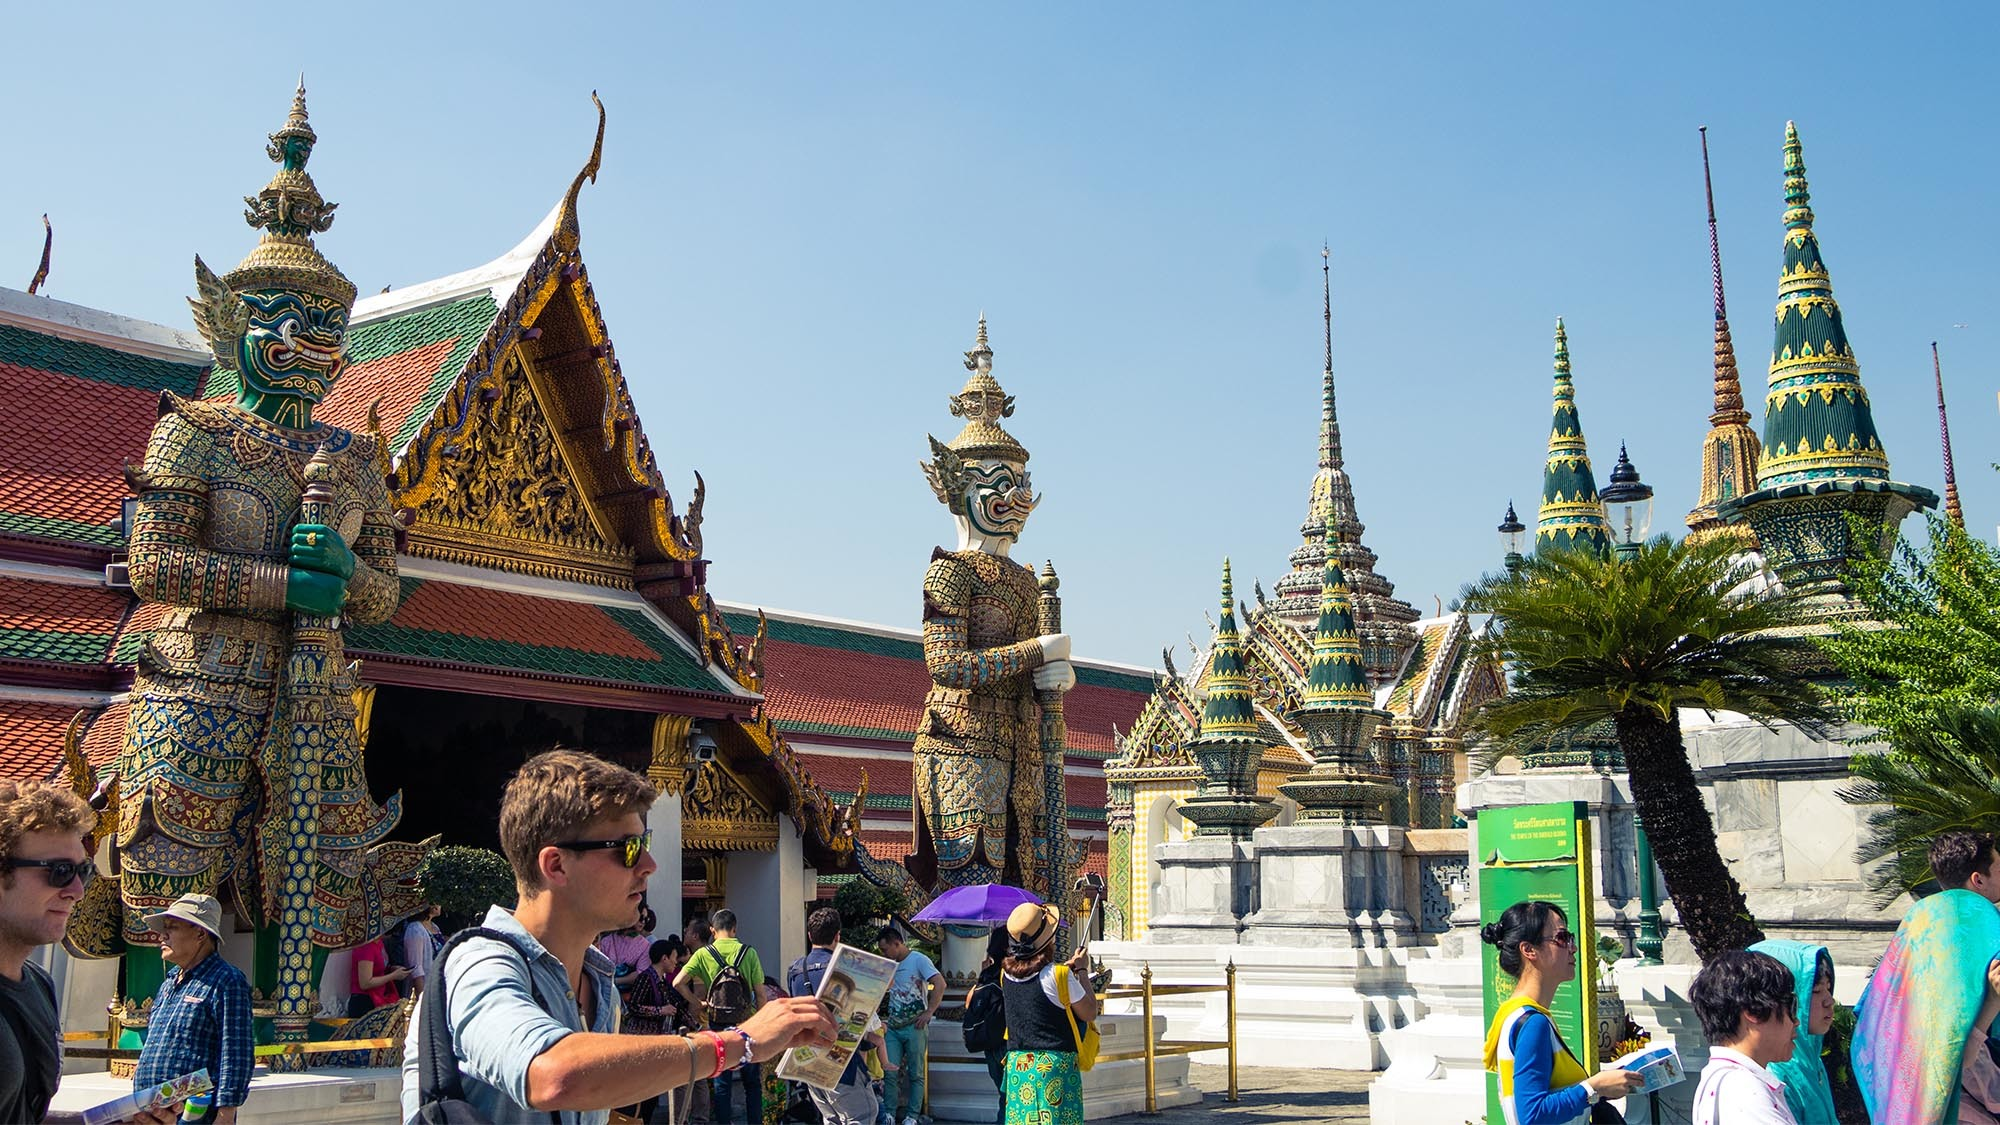 The Grand Palace & Wat Phra Kaew